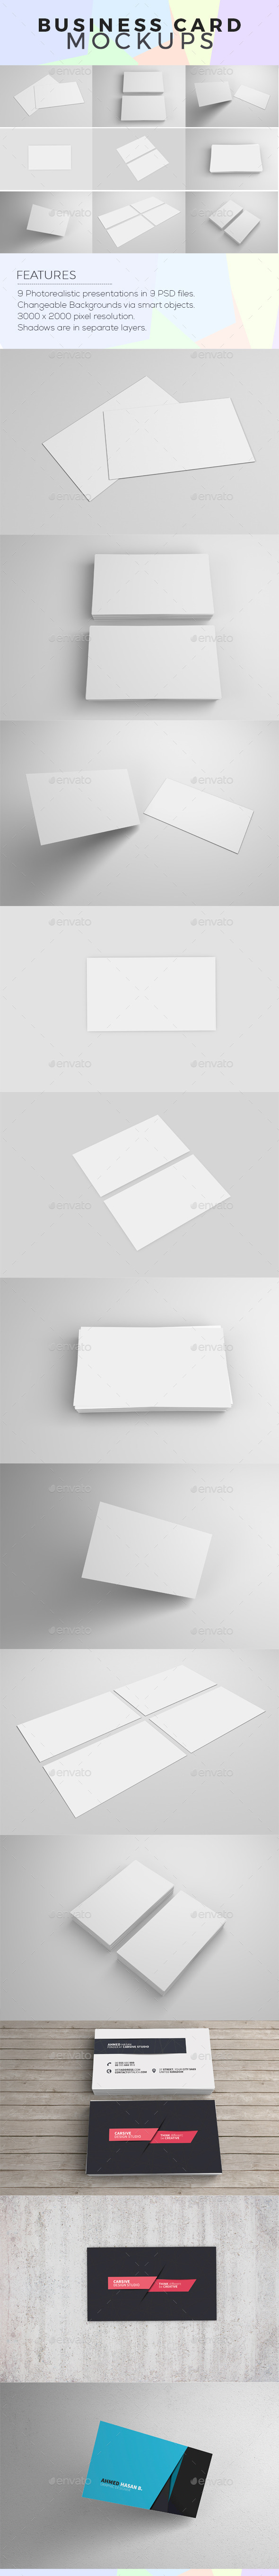 GraphicRiver Business Card Mock-Ups 11622794